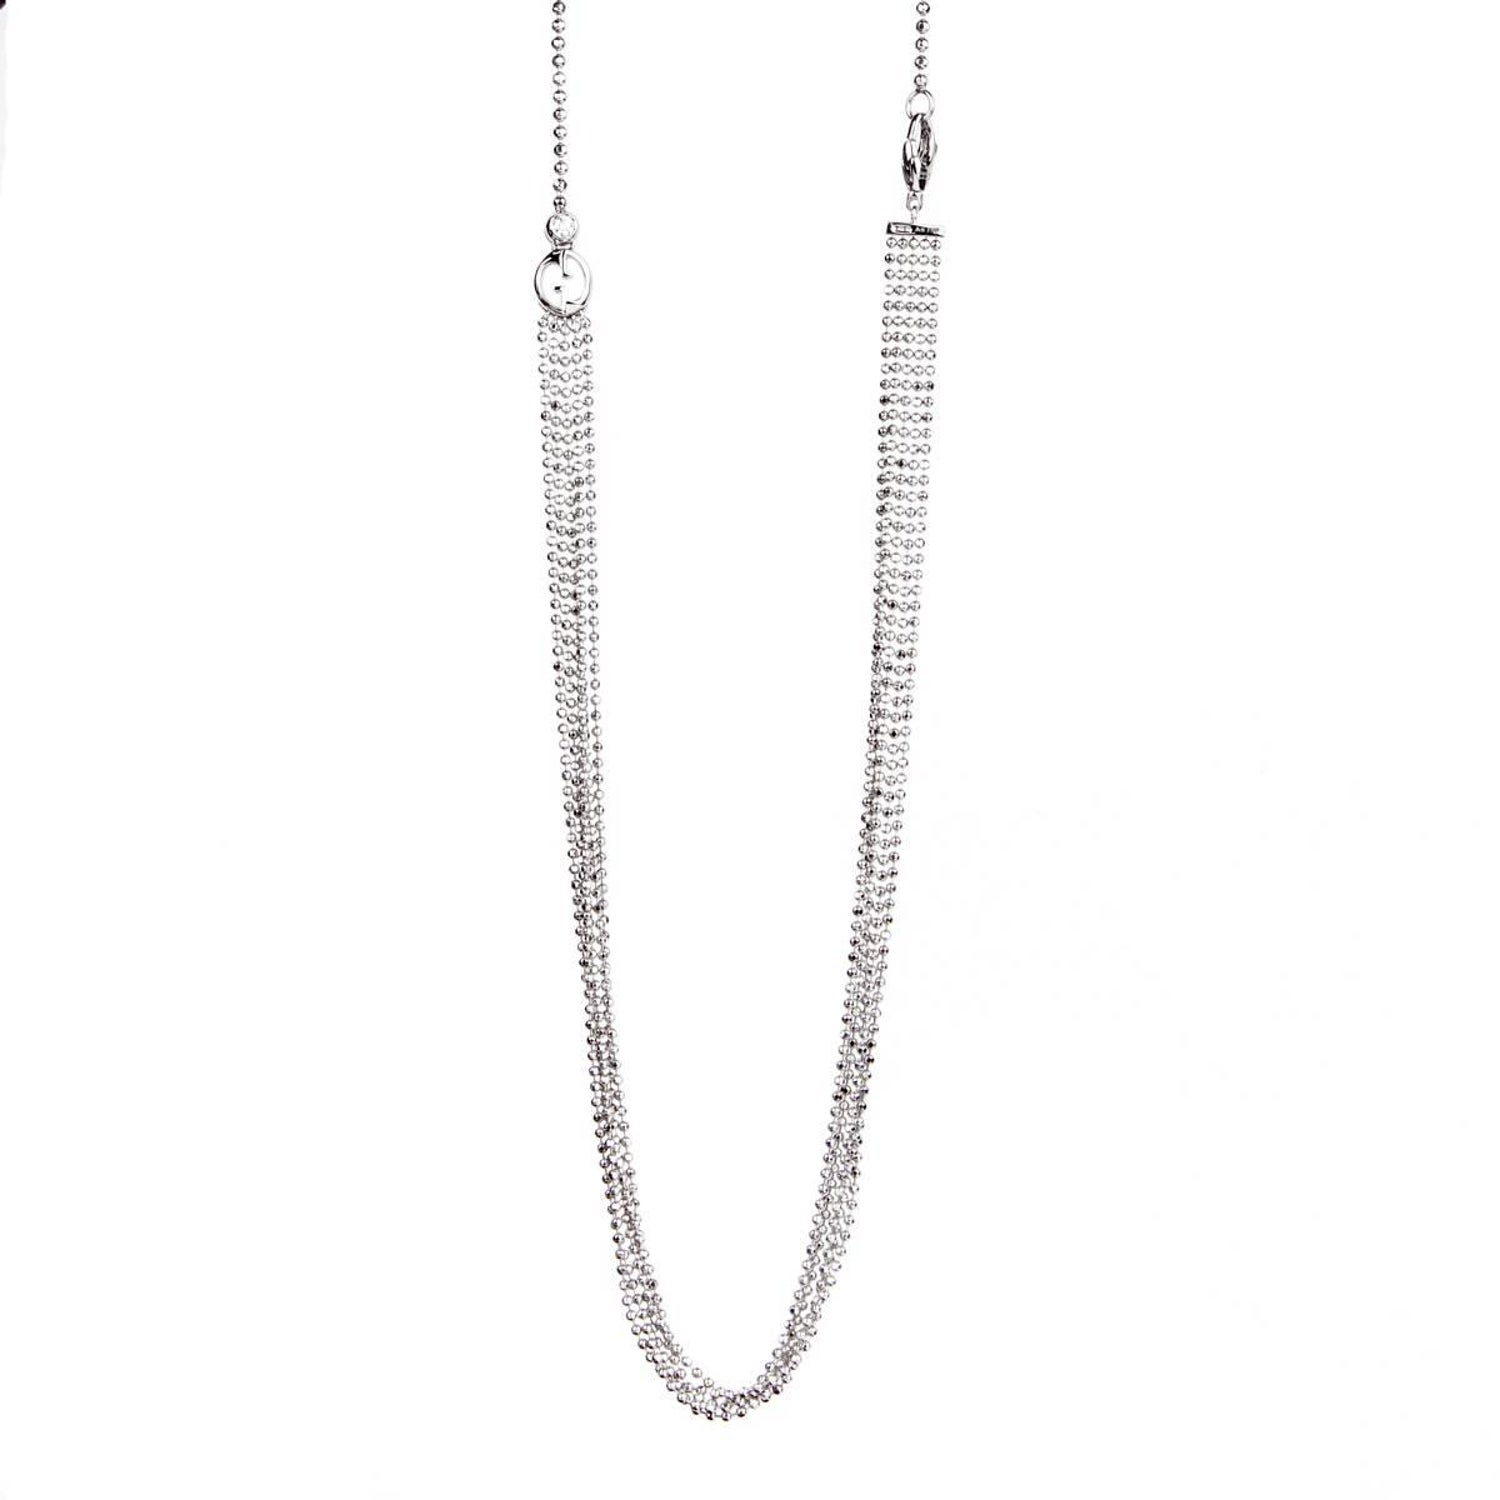 2938c0b5583 Gucci Multistrand White Gold Diamond Necklace at 1stdibs